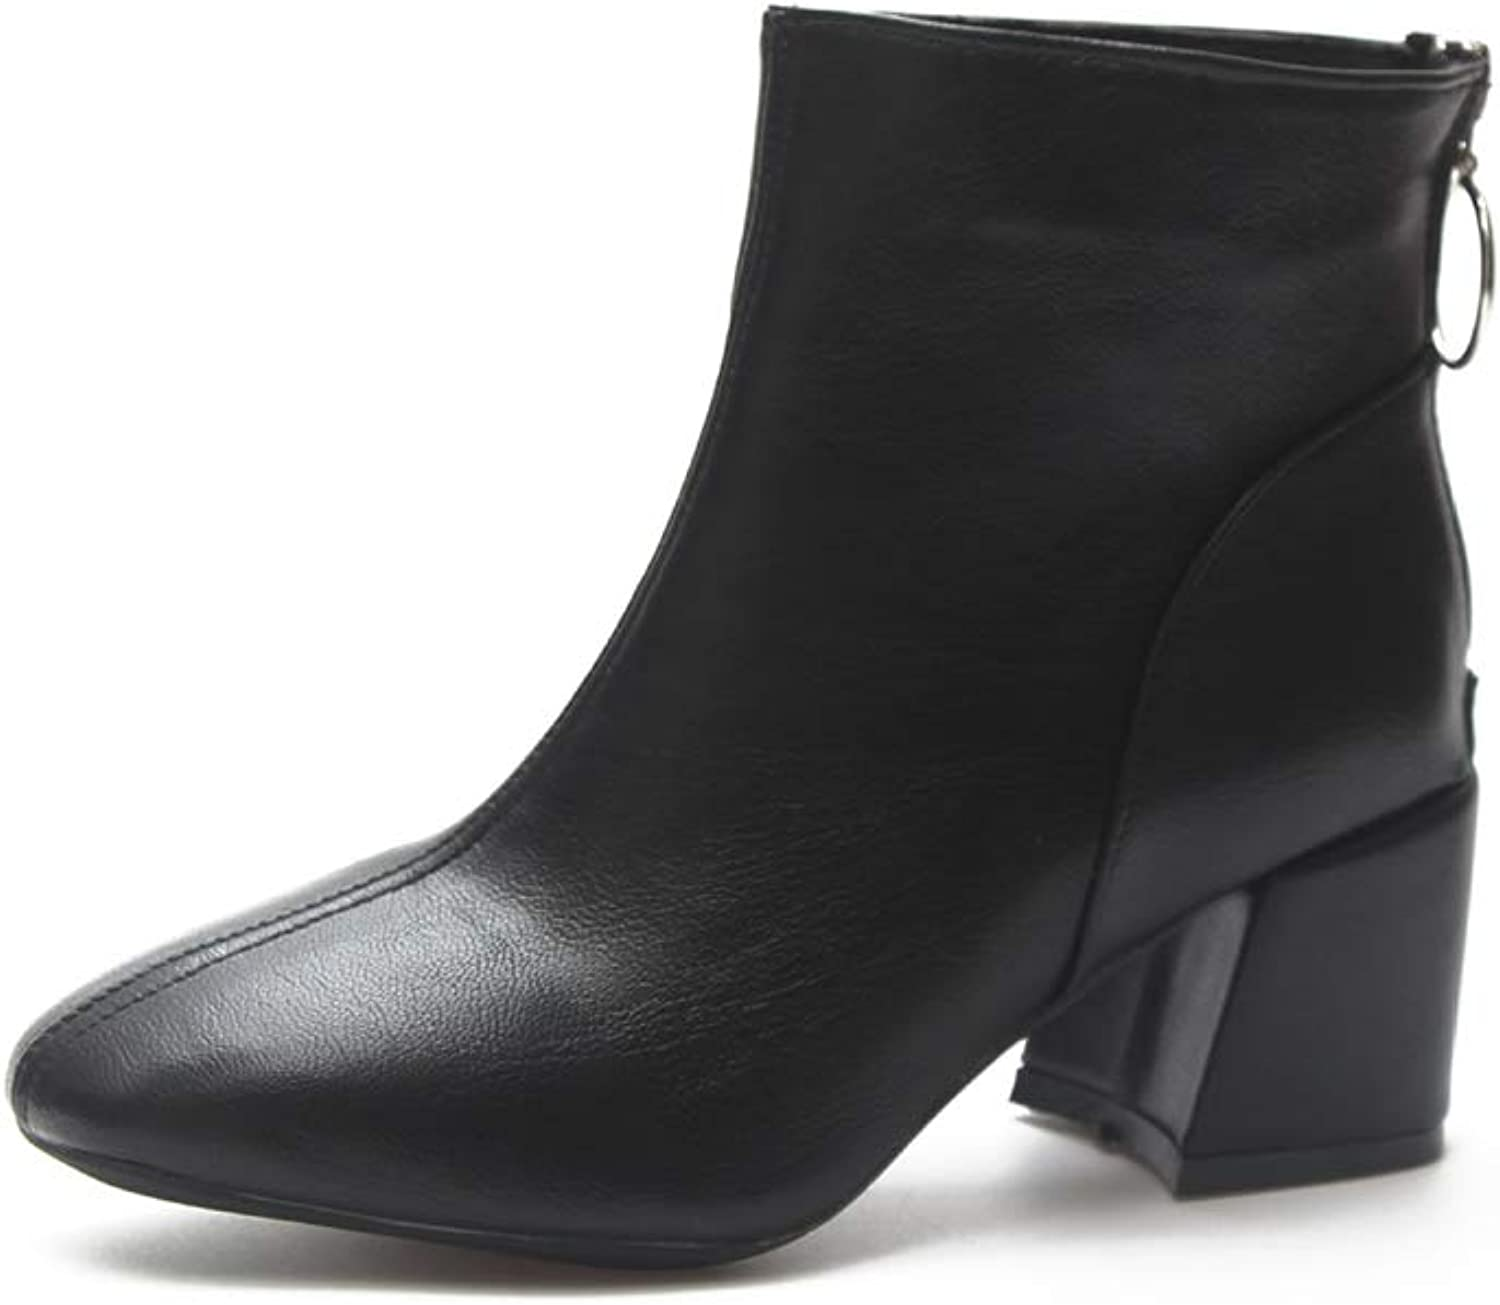 Super frist Women's Thick Heel Boots with Zipper Chelsea Boots Ankle Boots